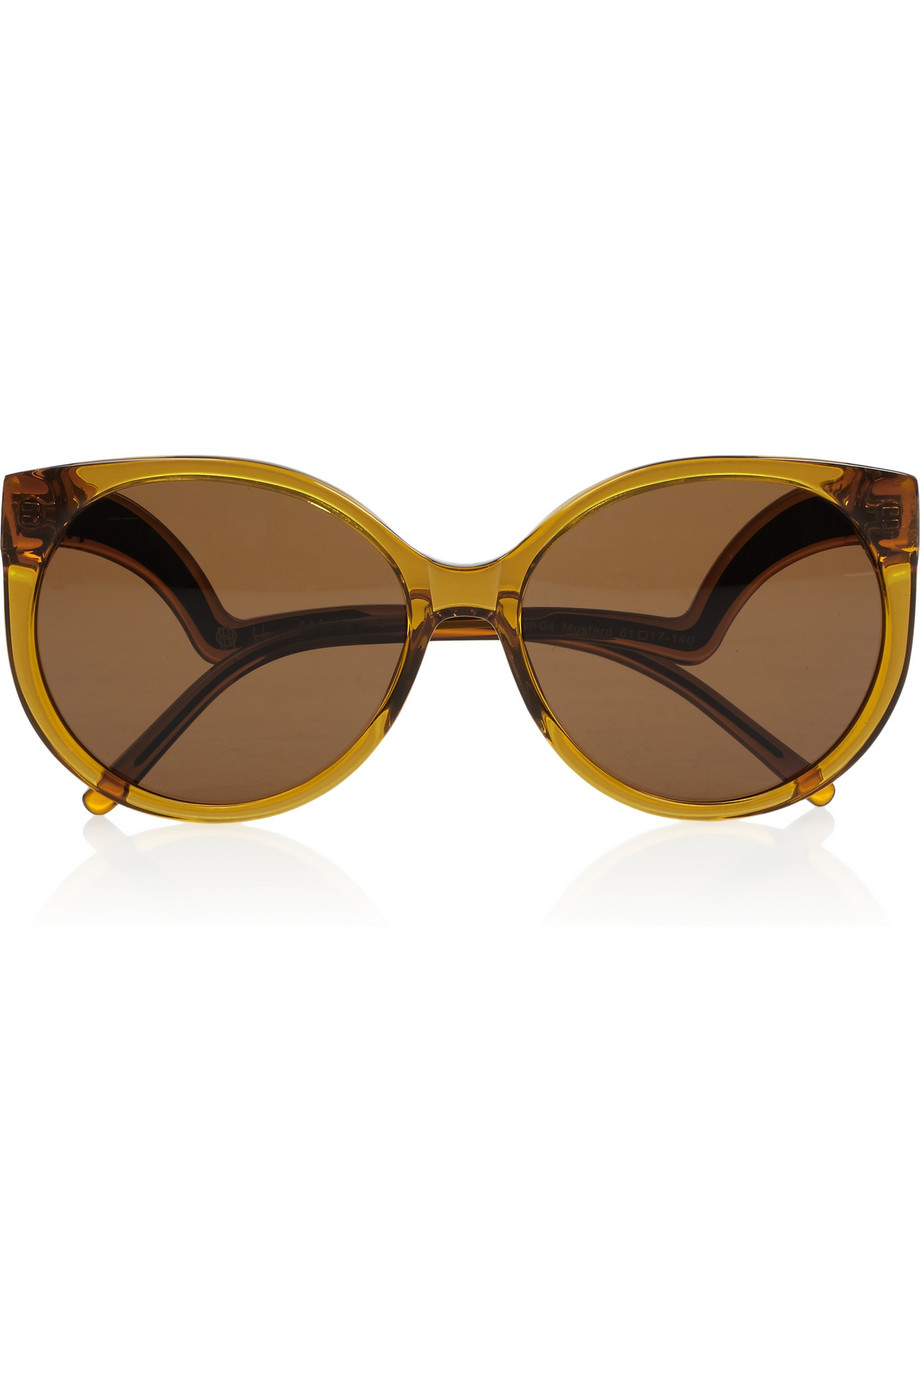 House Of Harlow Robyn Round Frame Acetate Sunglasses $69 Outnet.com